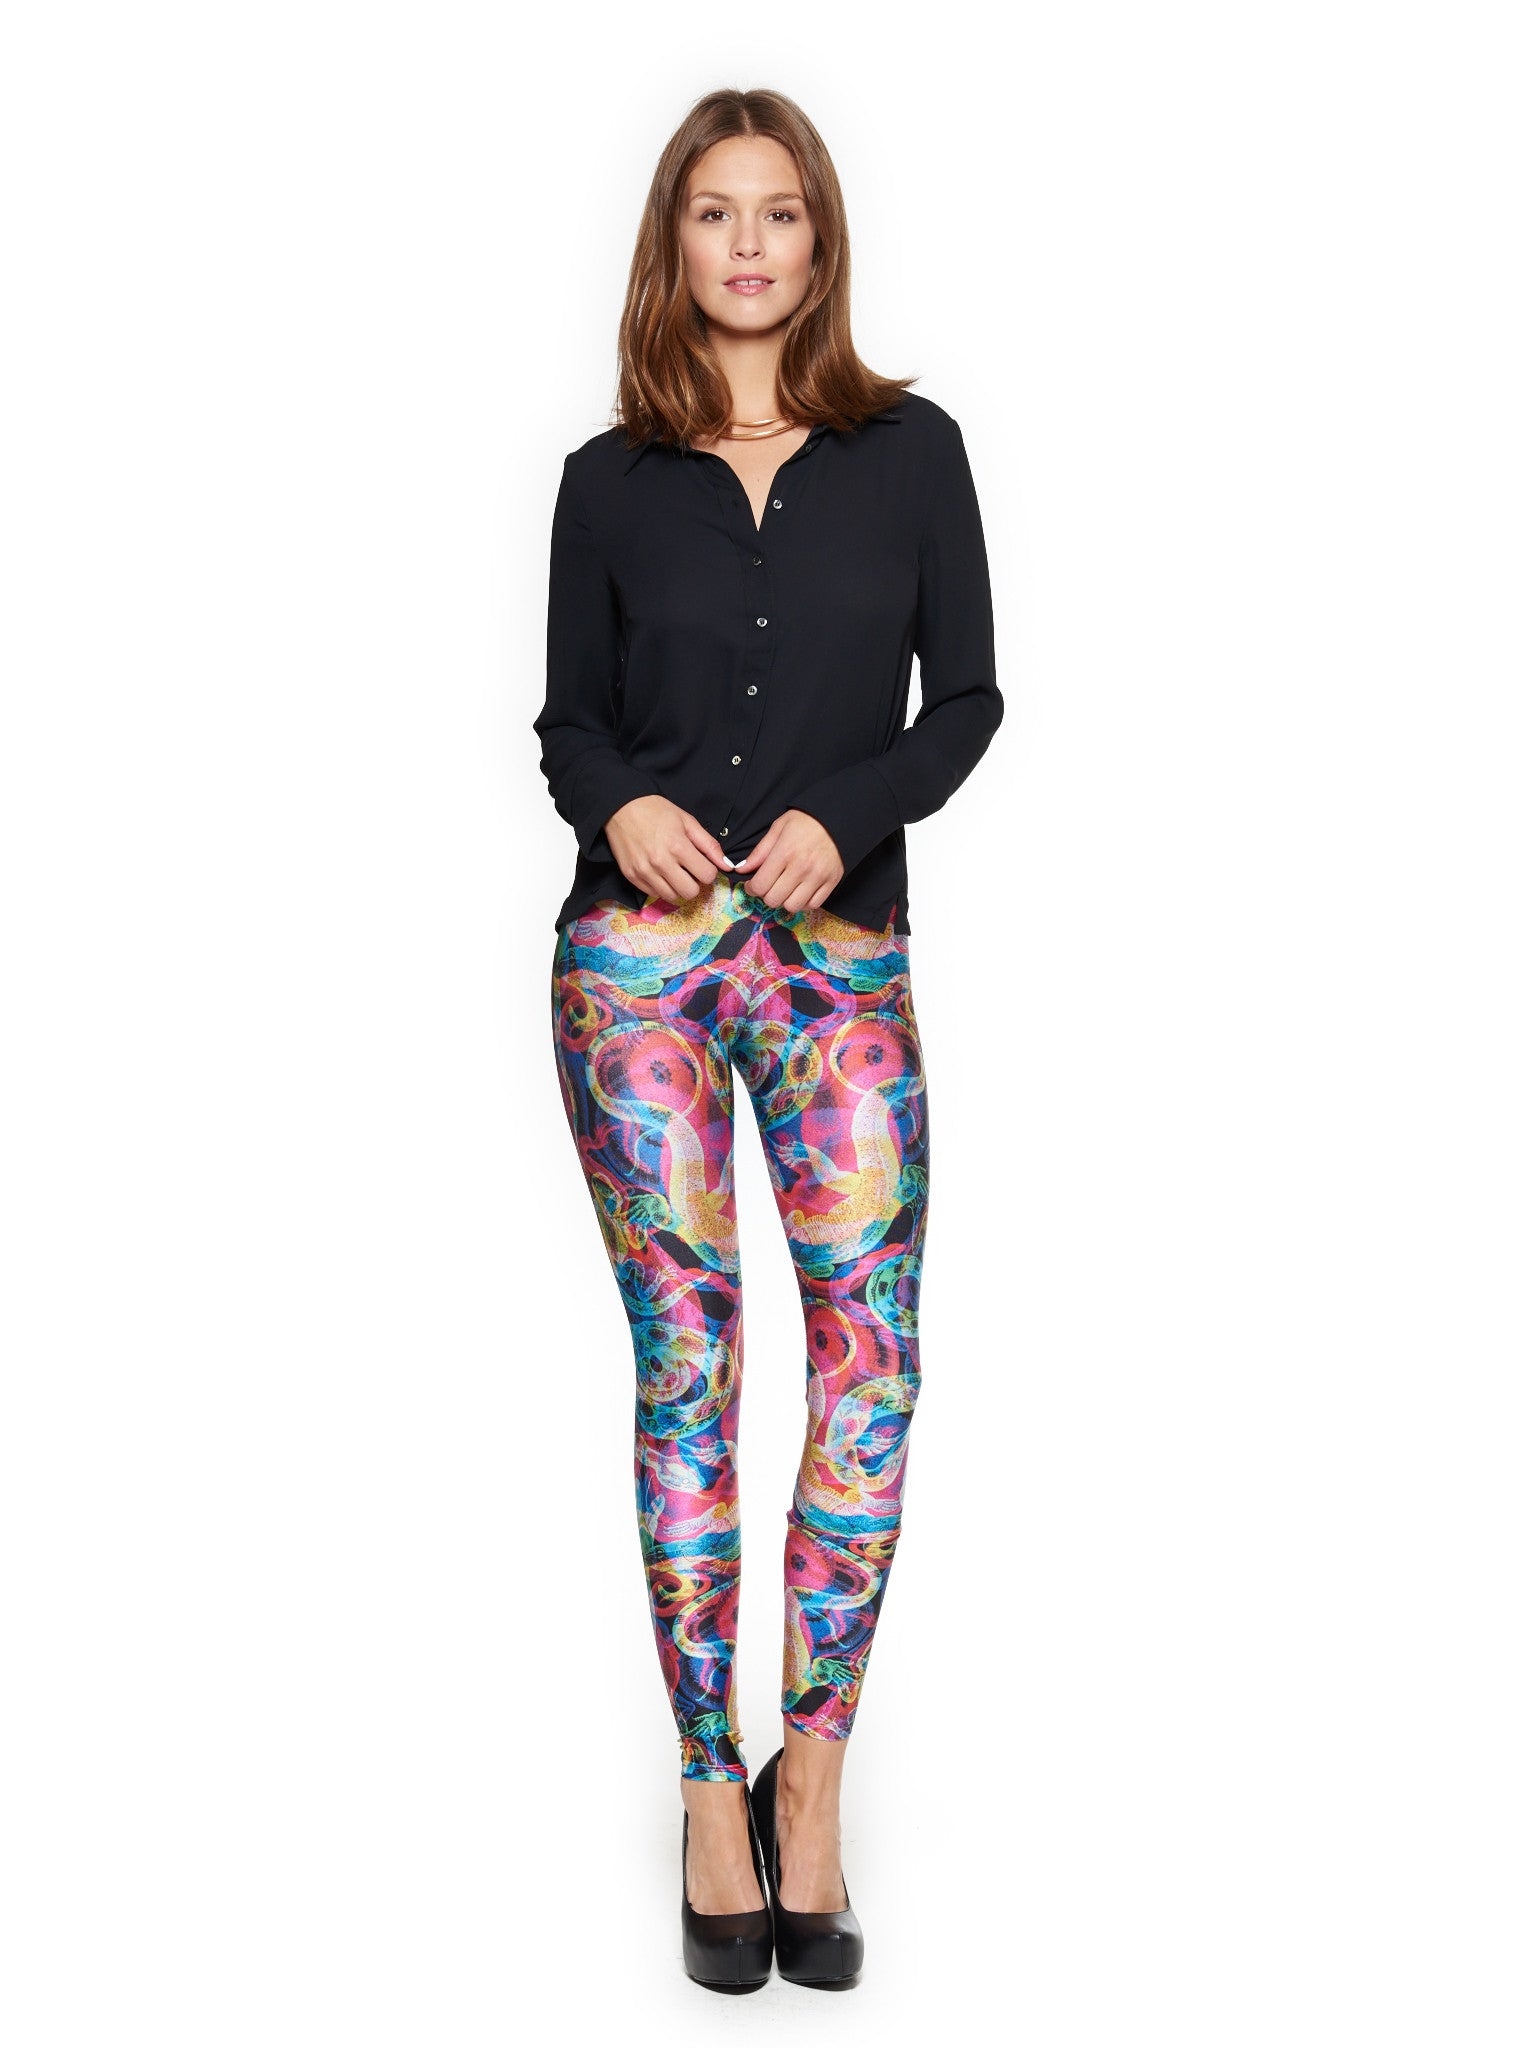 Damasco N.2 Queen West Leggings - Nuvango  - 1